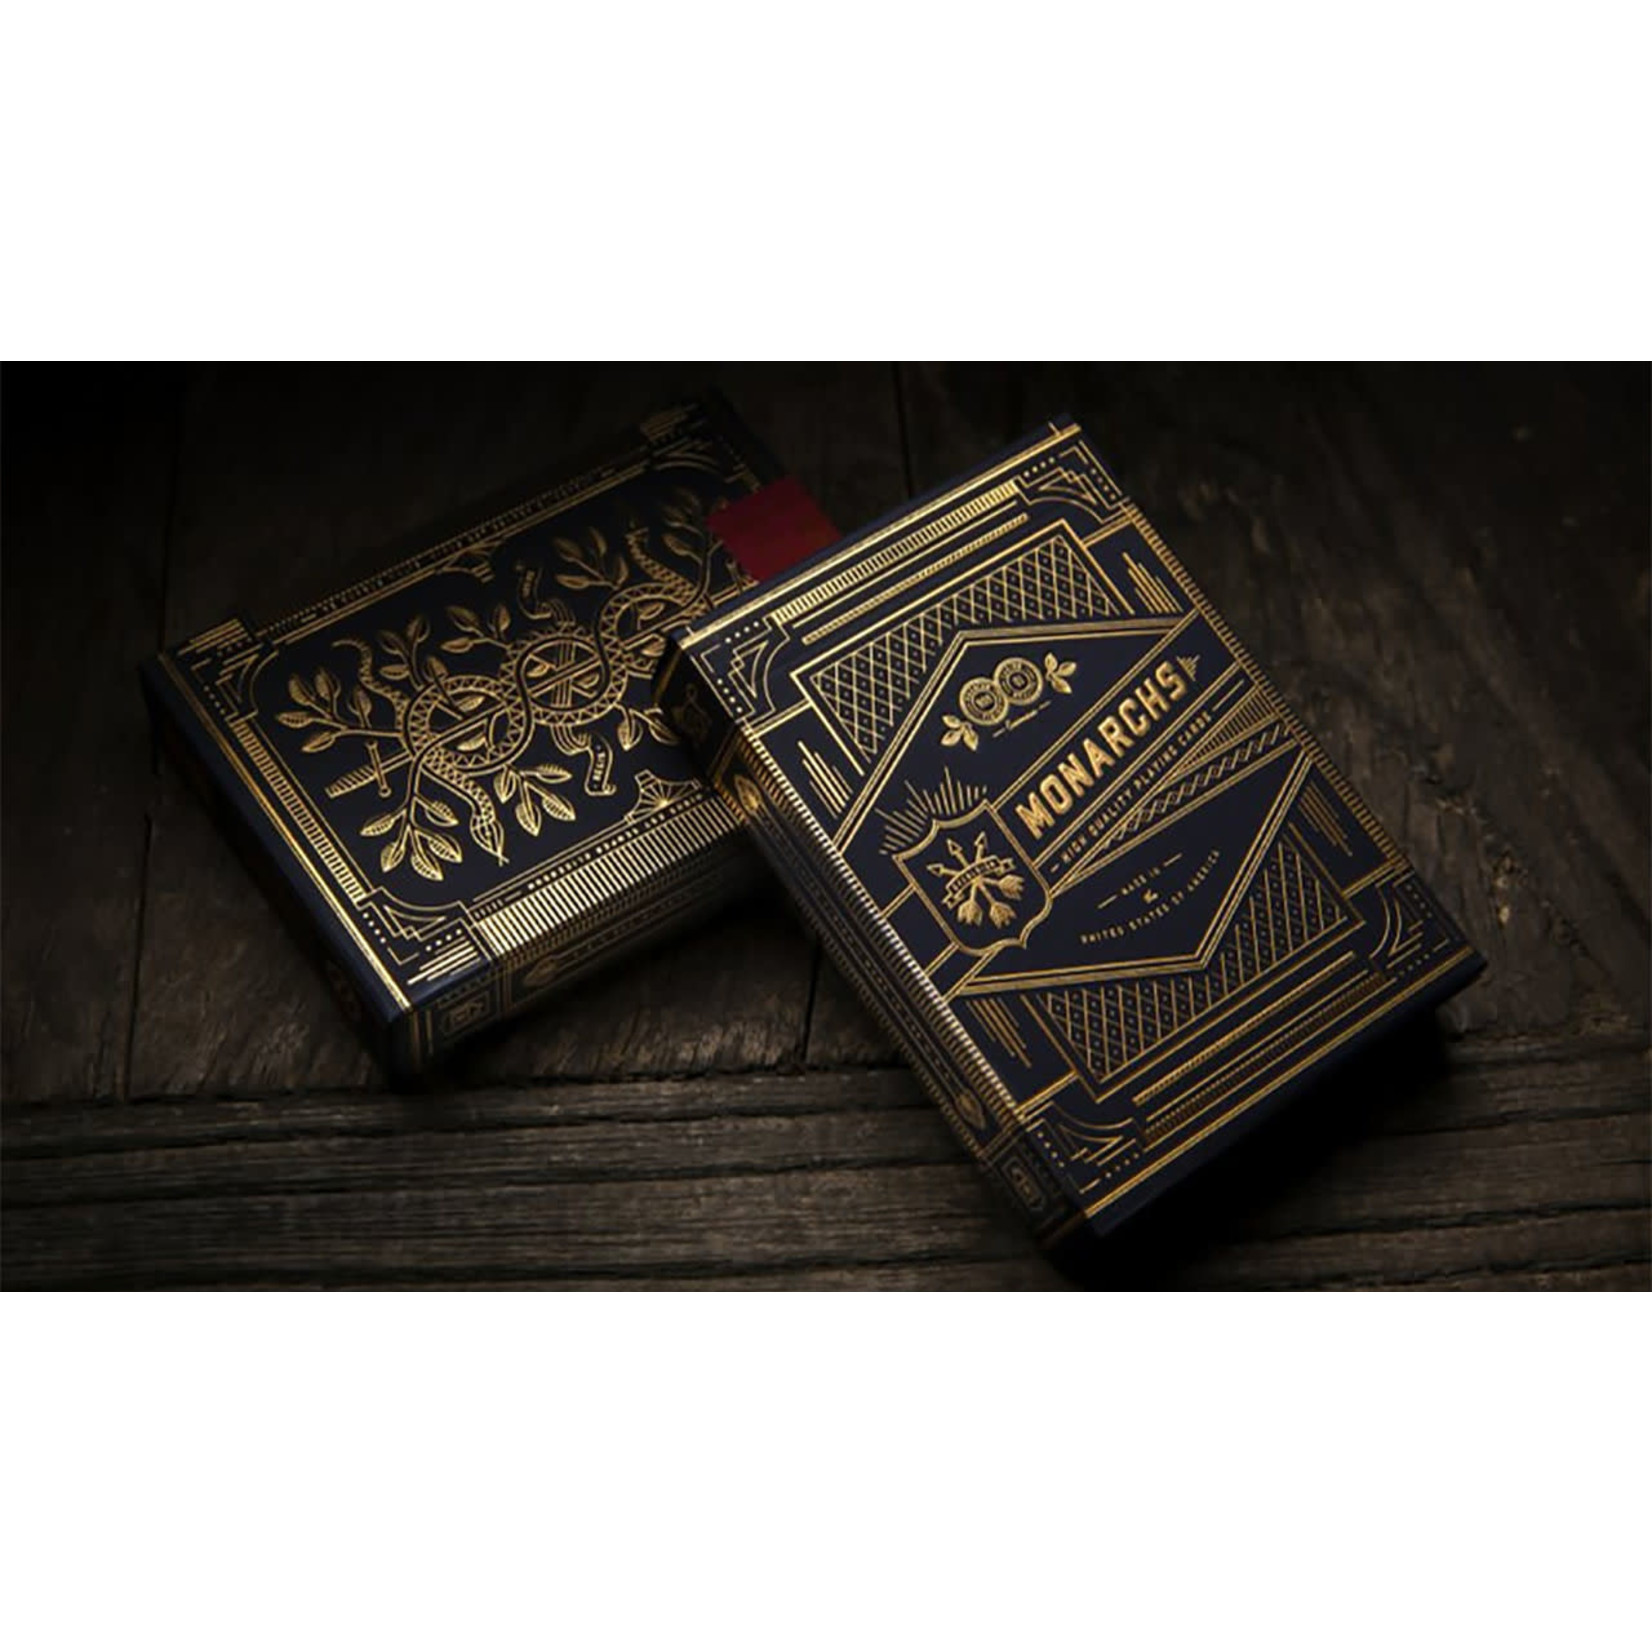 theory11 Theory 11 Monarch Playing Cards